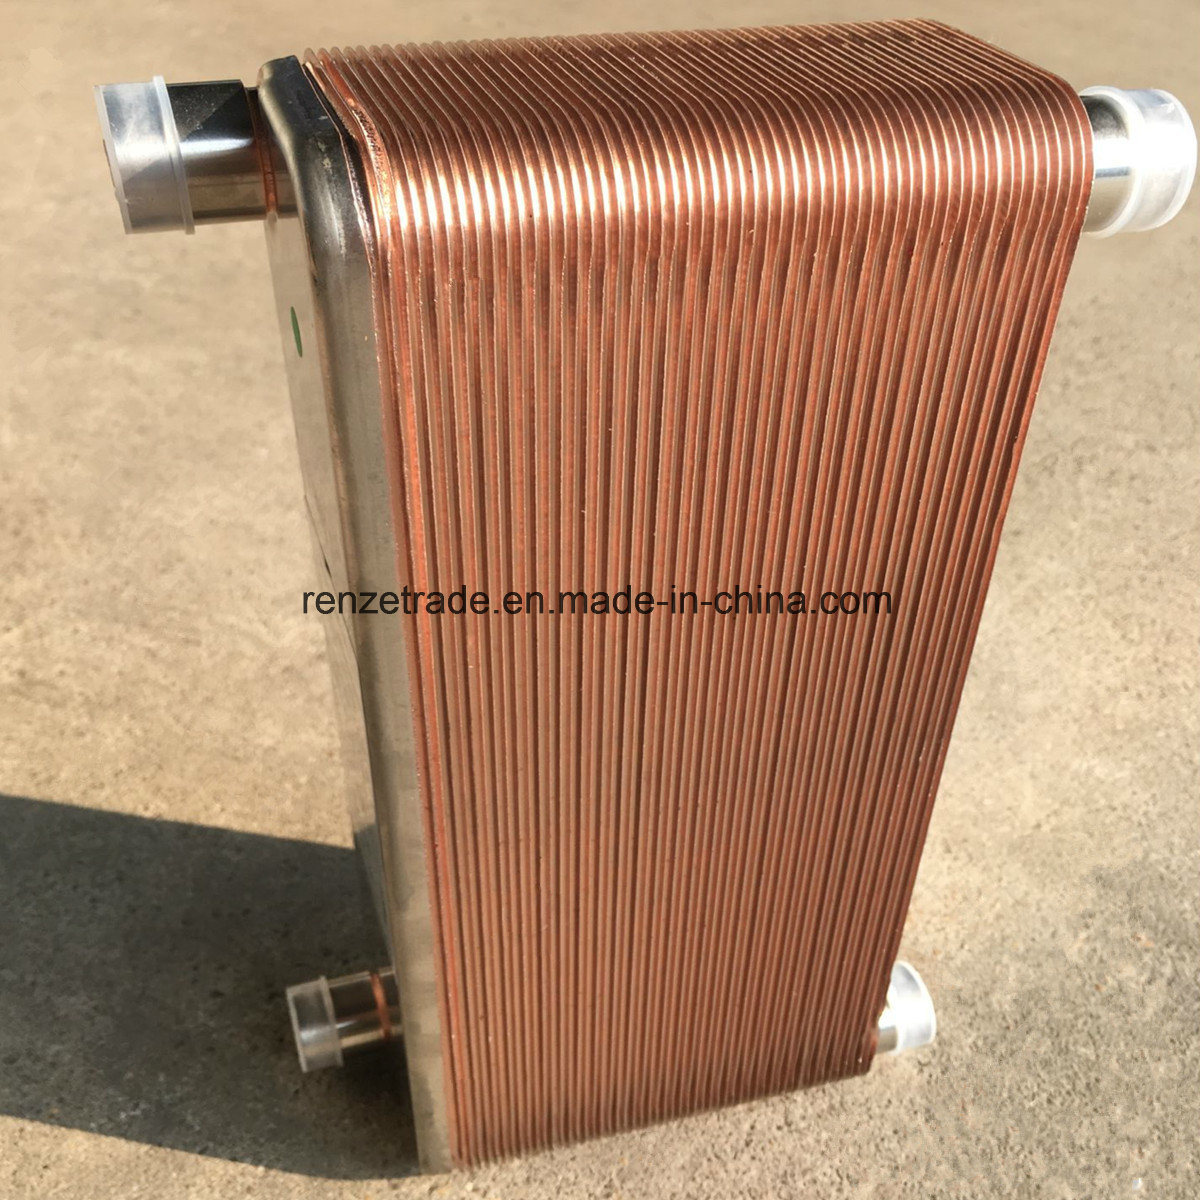 Refrigerant R22, R404A, R410A Condenser Central Heating Copper Brazed Plate Heat Exchanger